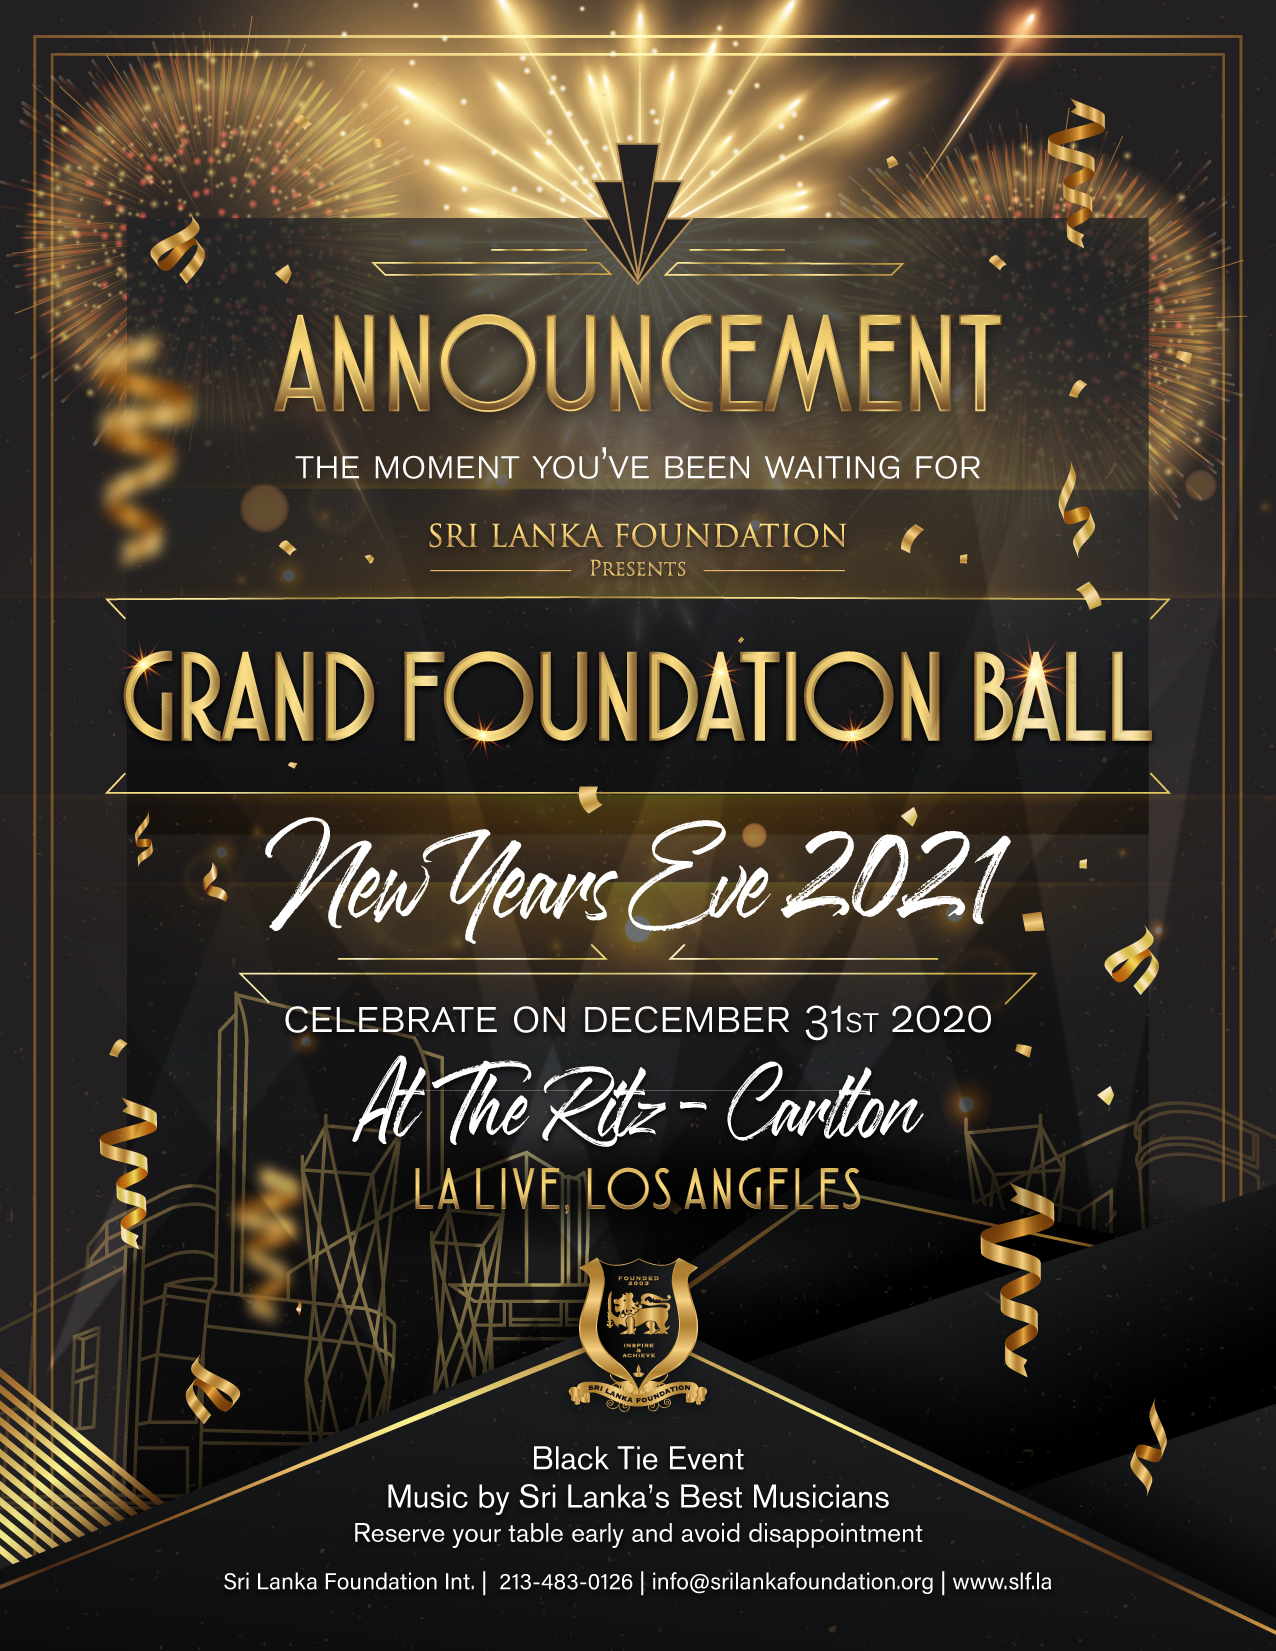 GRAND FOUNDATION BALL